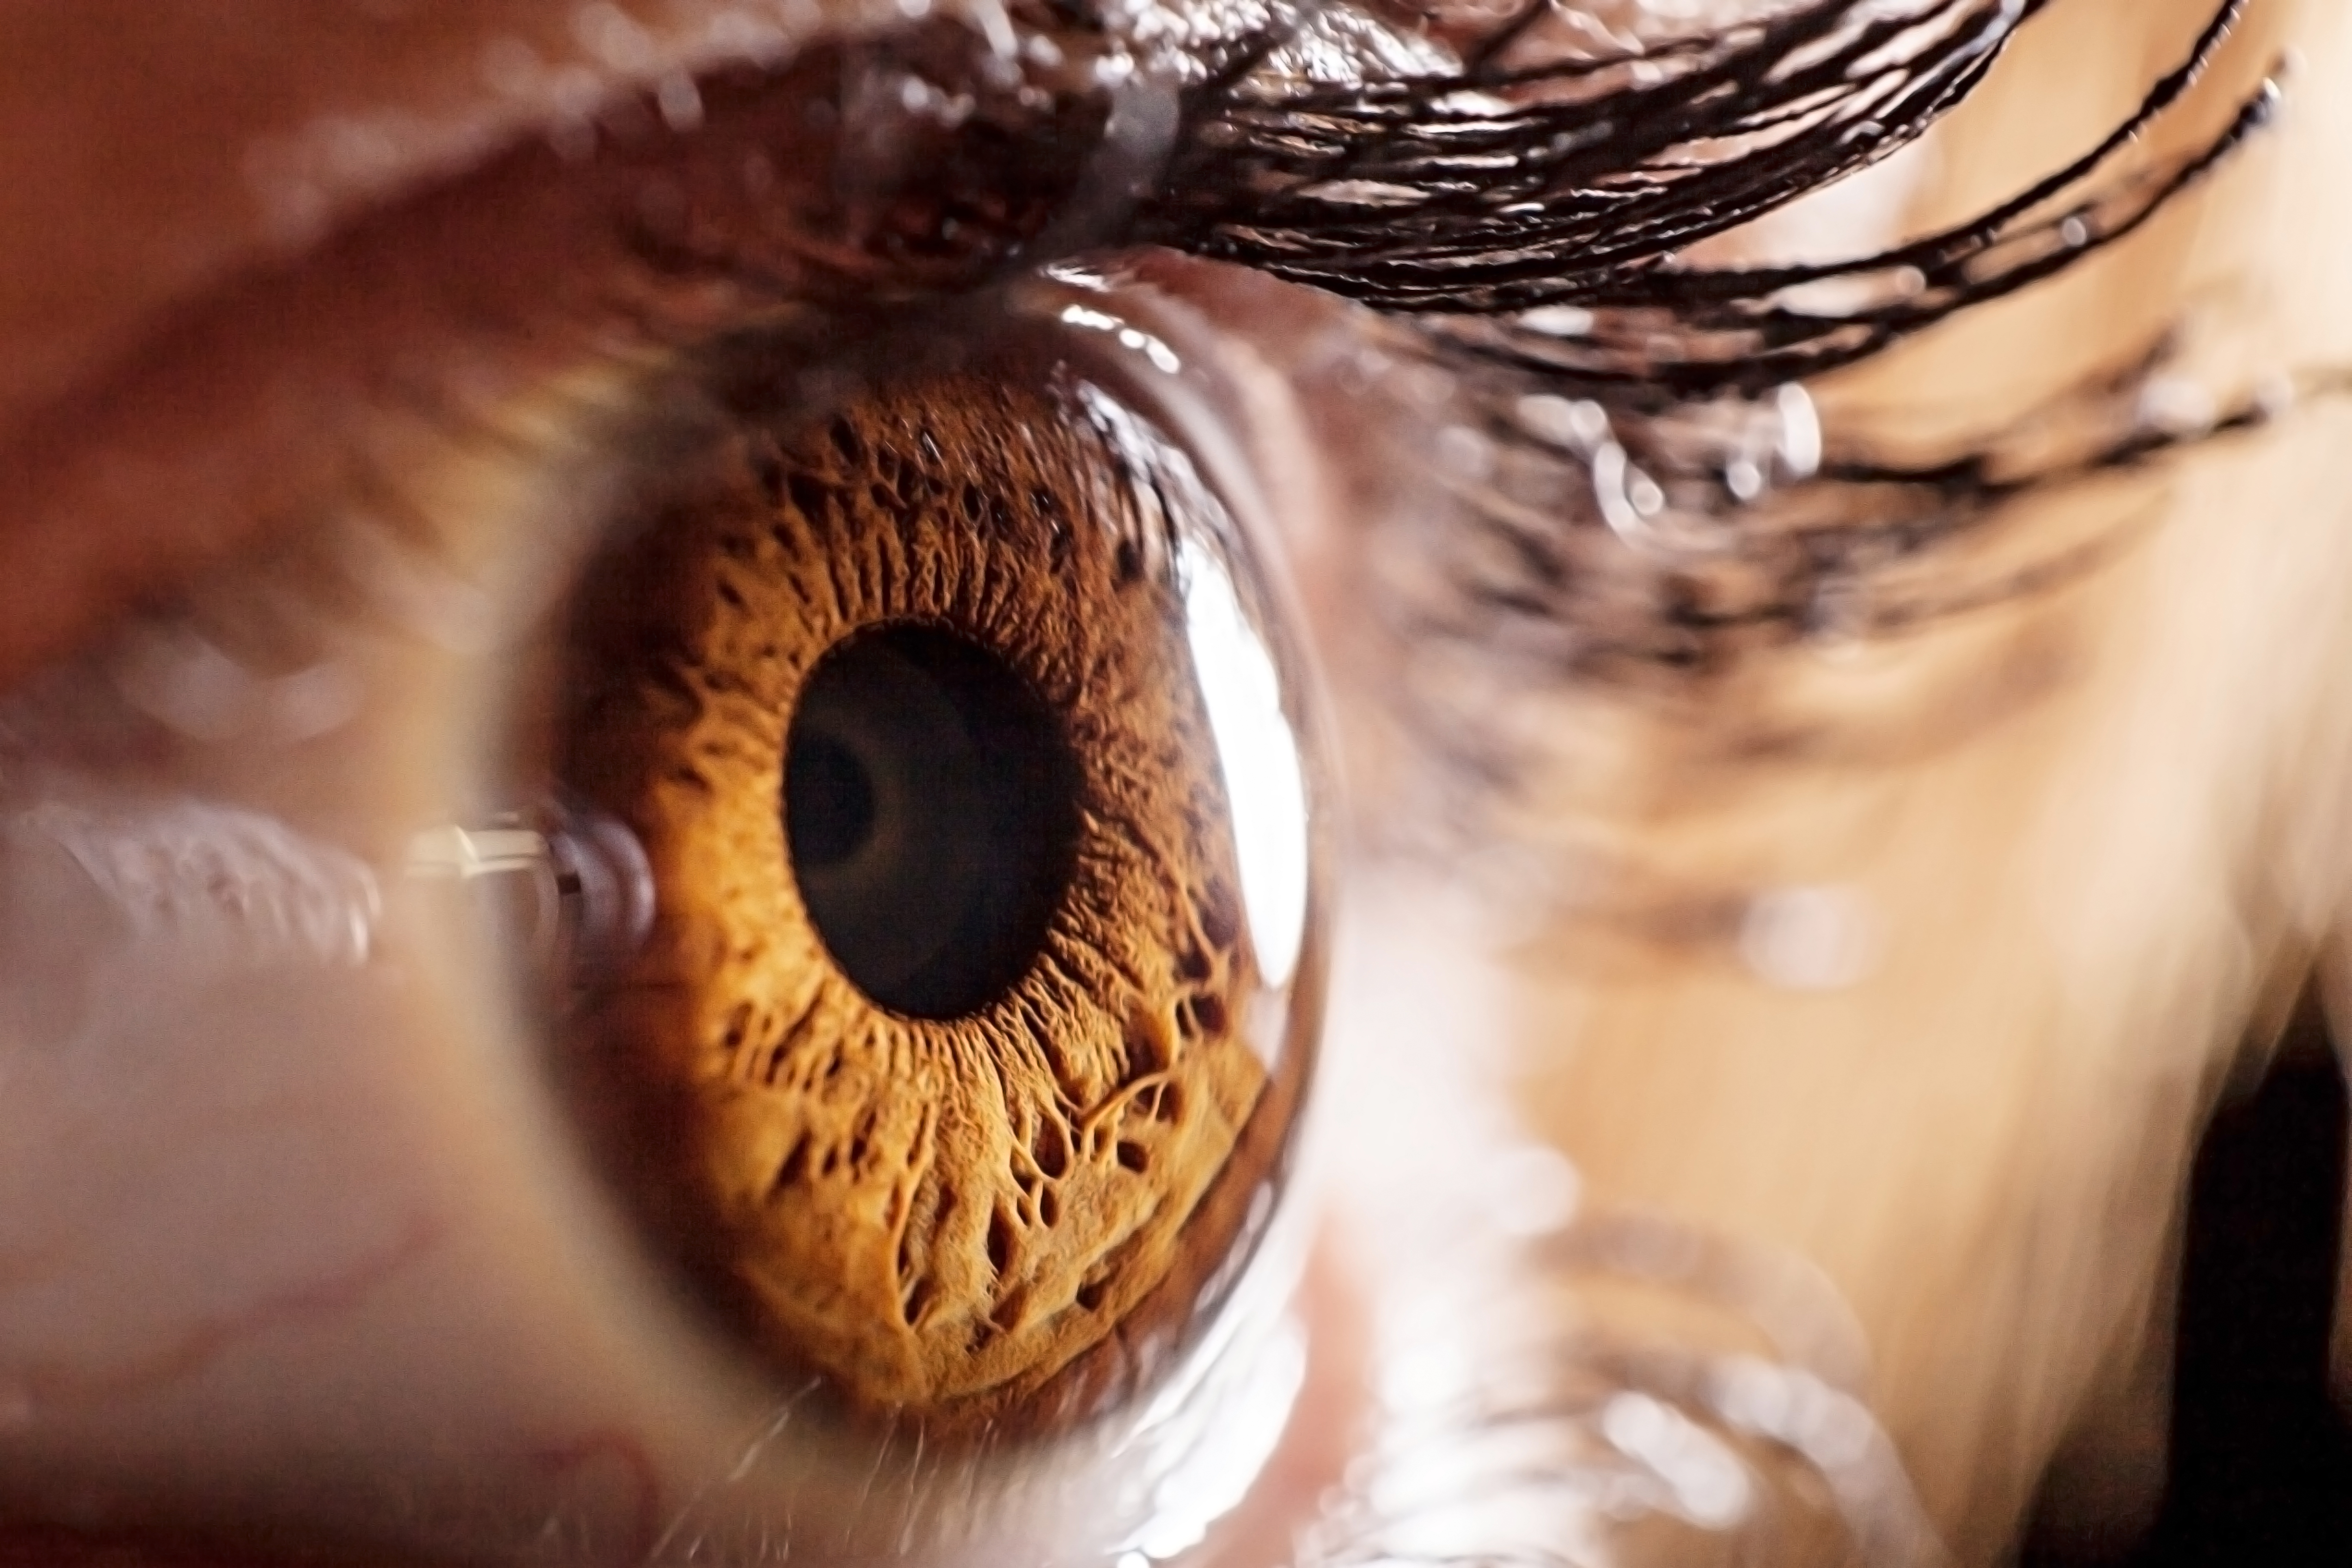 Closeup of an eye. From Shutterstock.